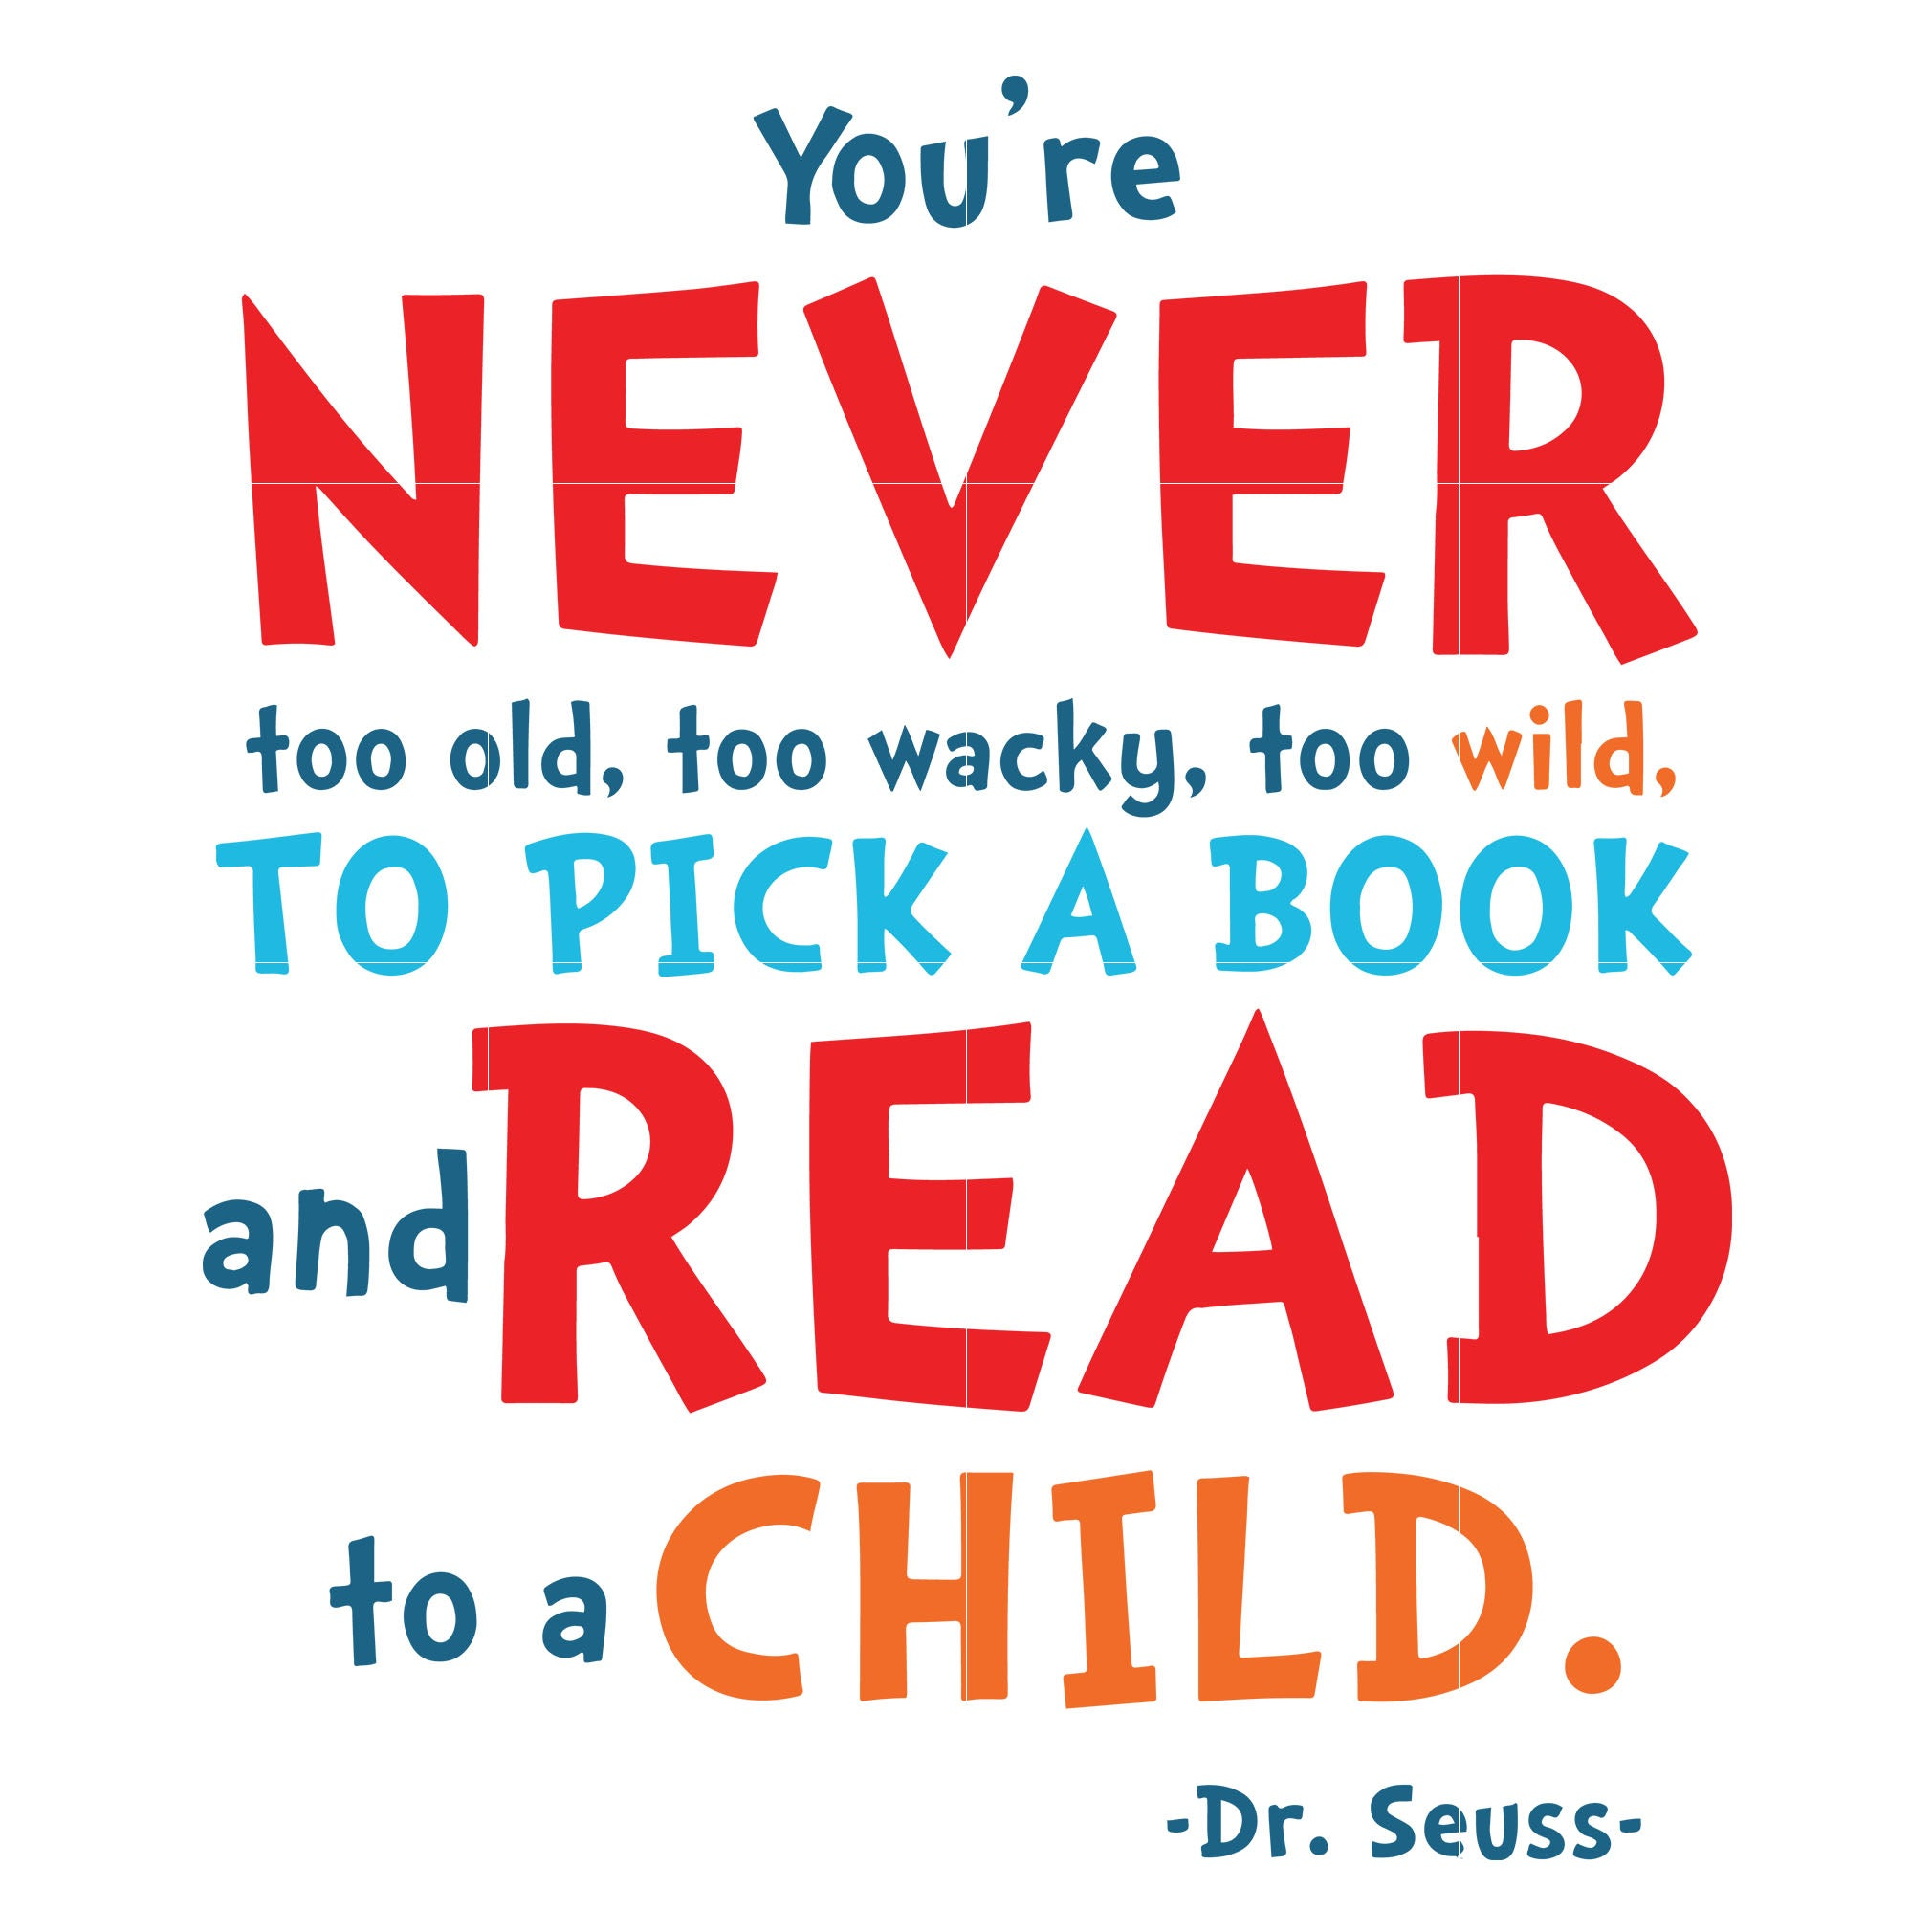 You're never too old too wacky too wild to pick a book and read to a child, dr seuss svg, dr seuss quotes, digital file